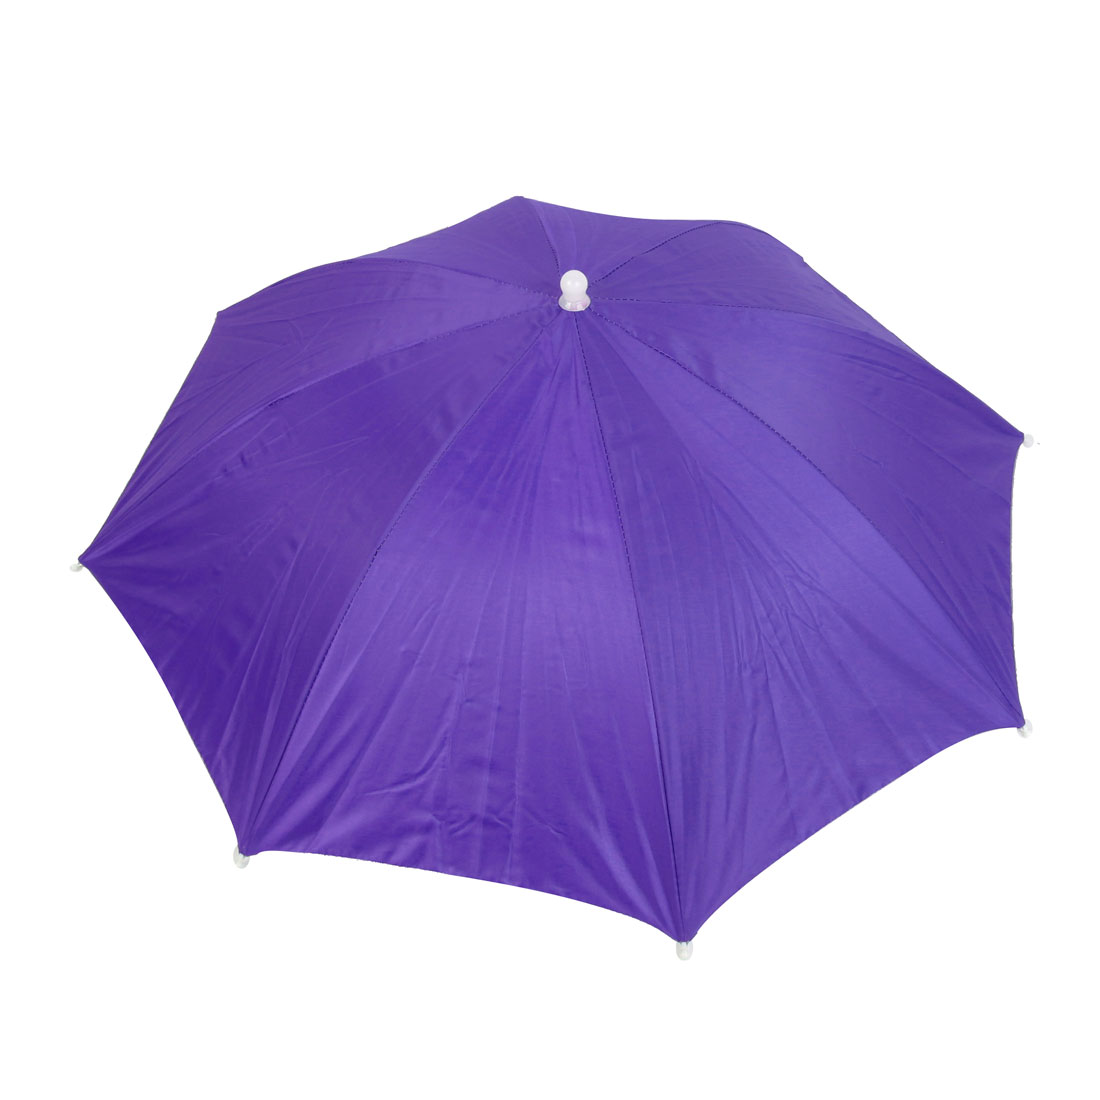 Stretchy Head Band Purple Foldable Umbrella Headwear Hat for Fishing